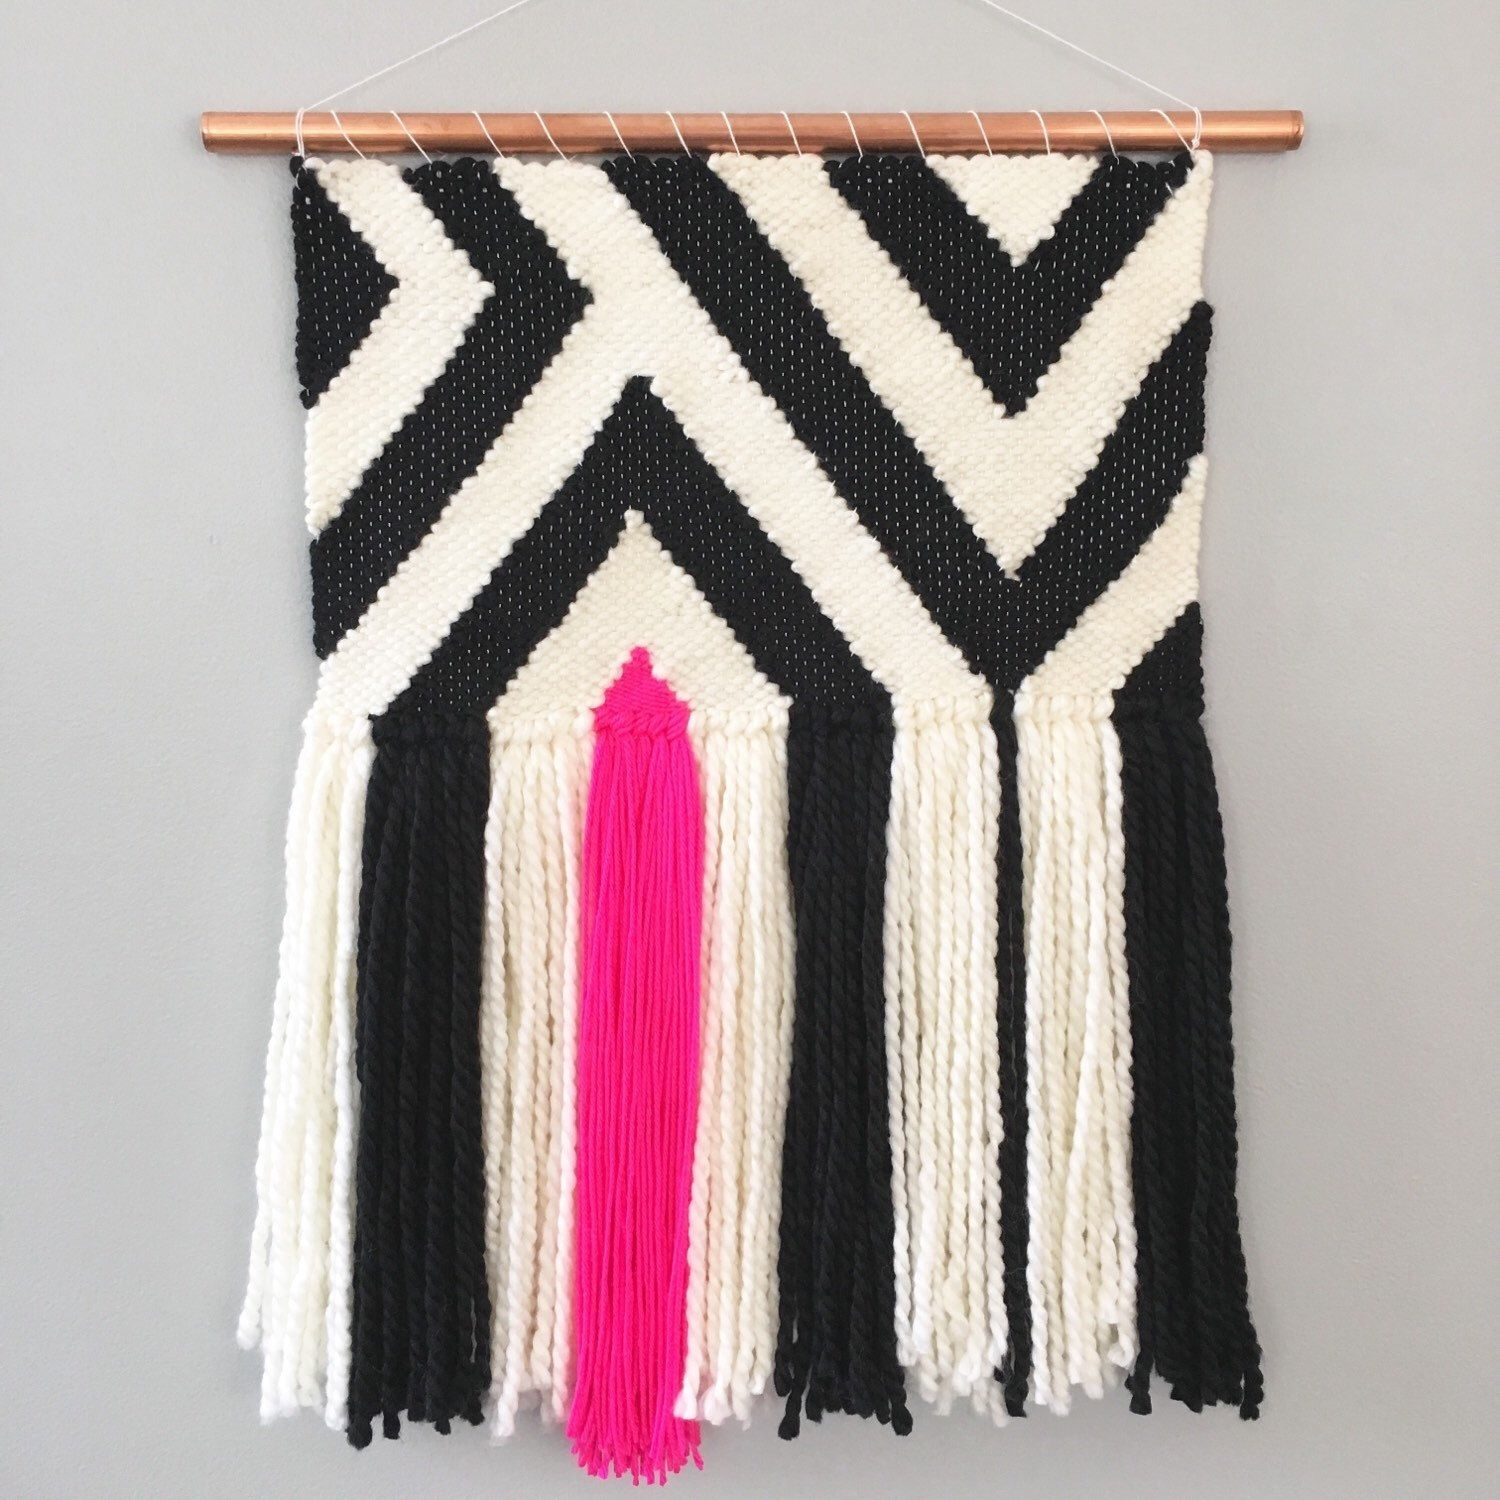 Ready To Ship Handmade Woven Wall Hanging Tapestry Weaving Wall Intended For Most Recent Handmade Textile Wall Art (View 11 of 15)